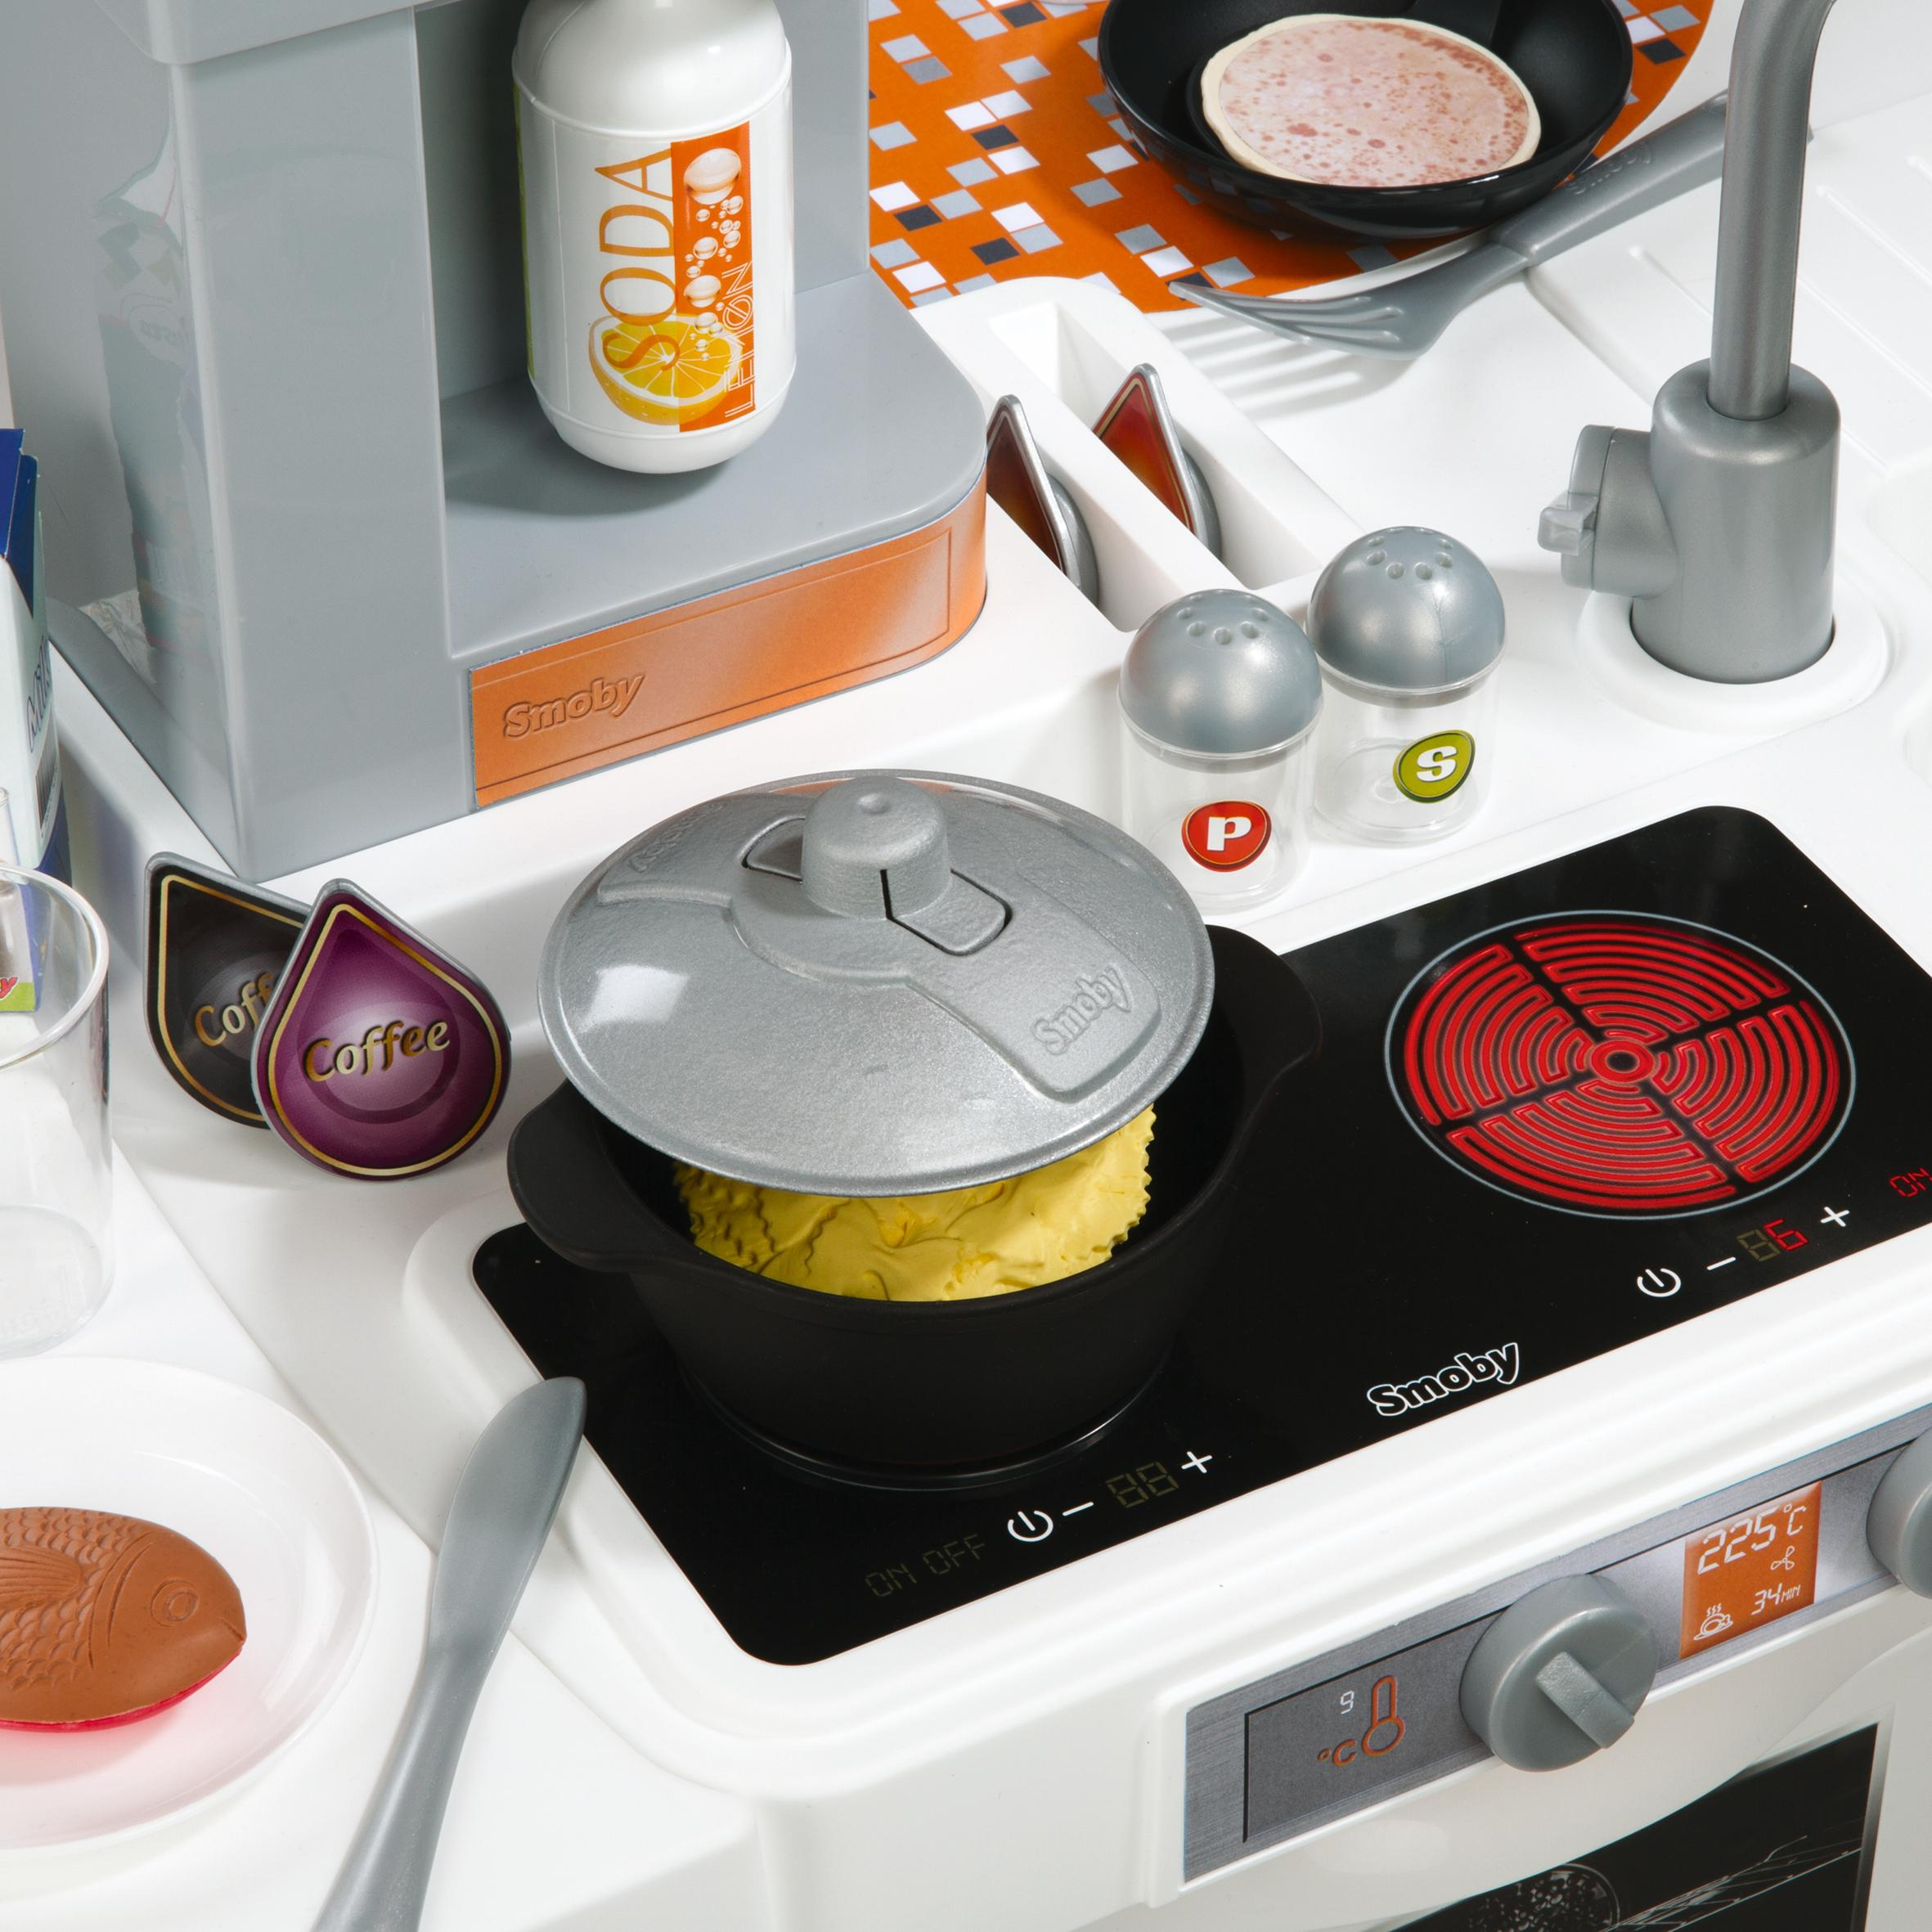 Smoby Tefal French Touch Bubble Küche Mit Wasserfunktion Smoby Tefal French Touch Bubble Küche Mit Wasserfunktion